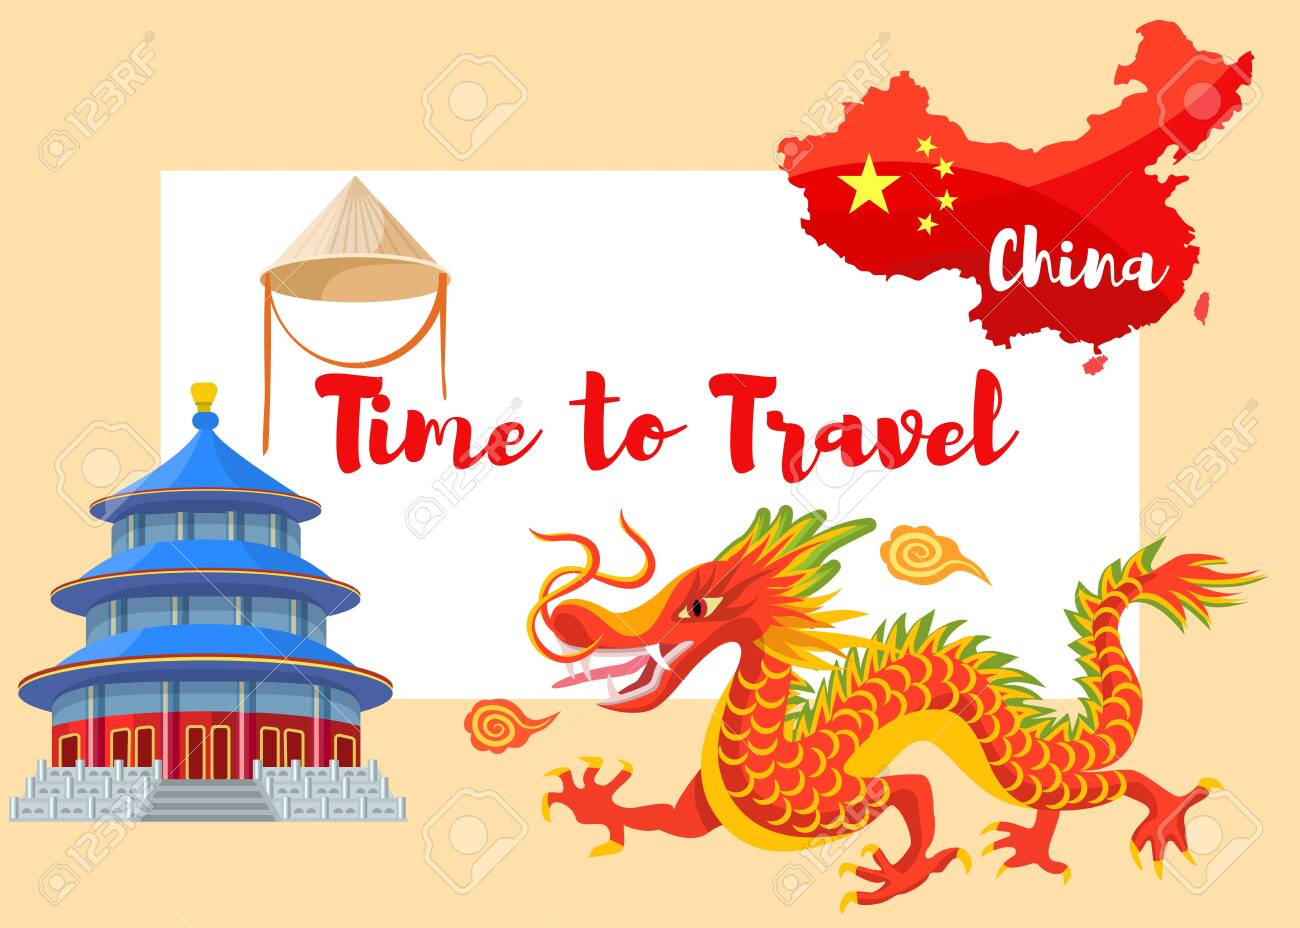 Chinese culture in Asia vector illustration. Infographic set of asian symbols red dragon, chinese cone hat, pagoda and flag on red map of China contour with time to travel lettering. - 125253837